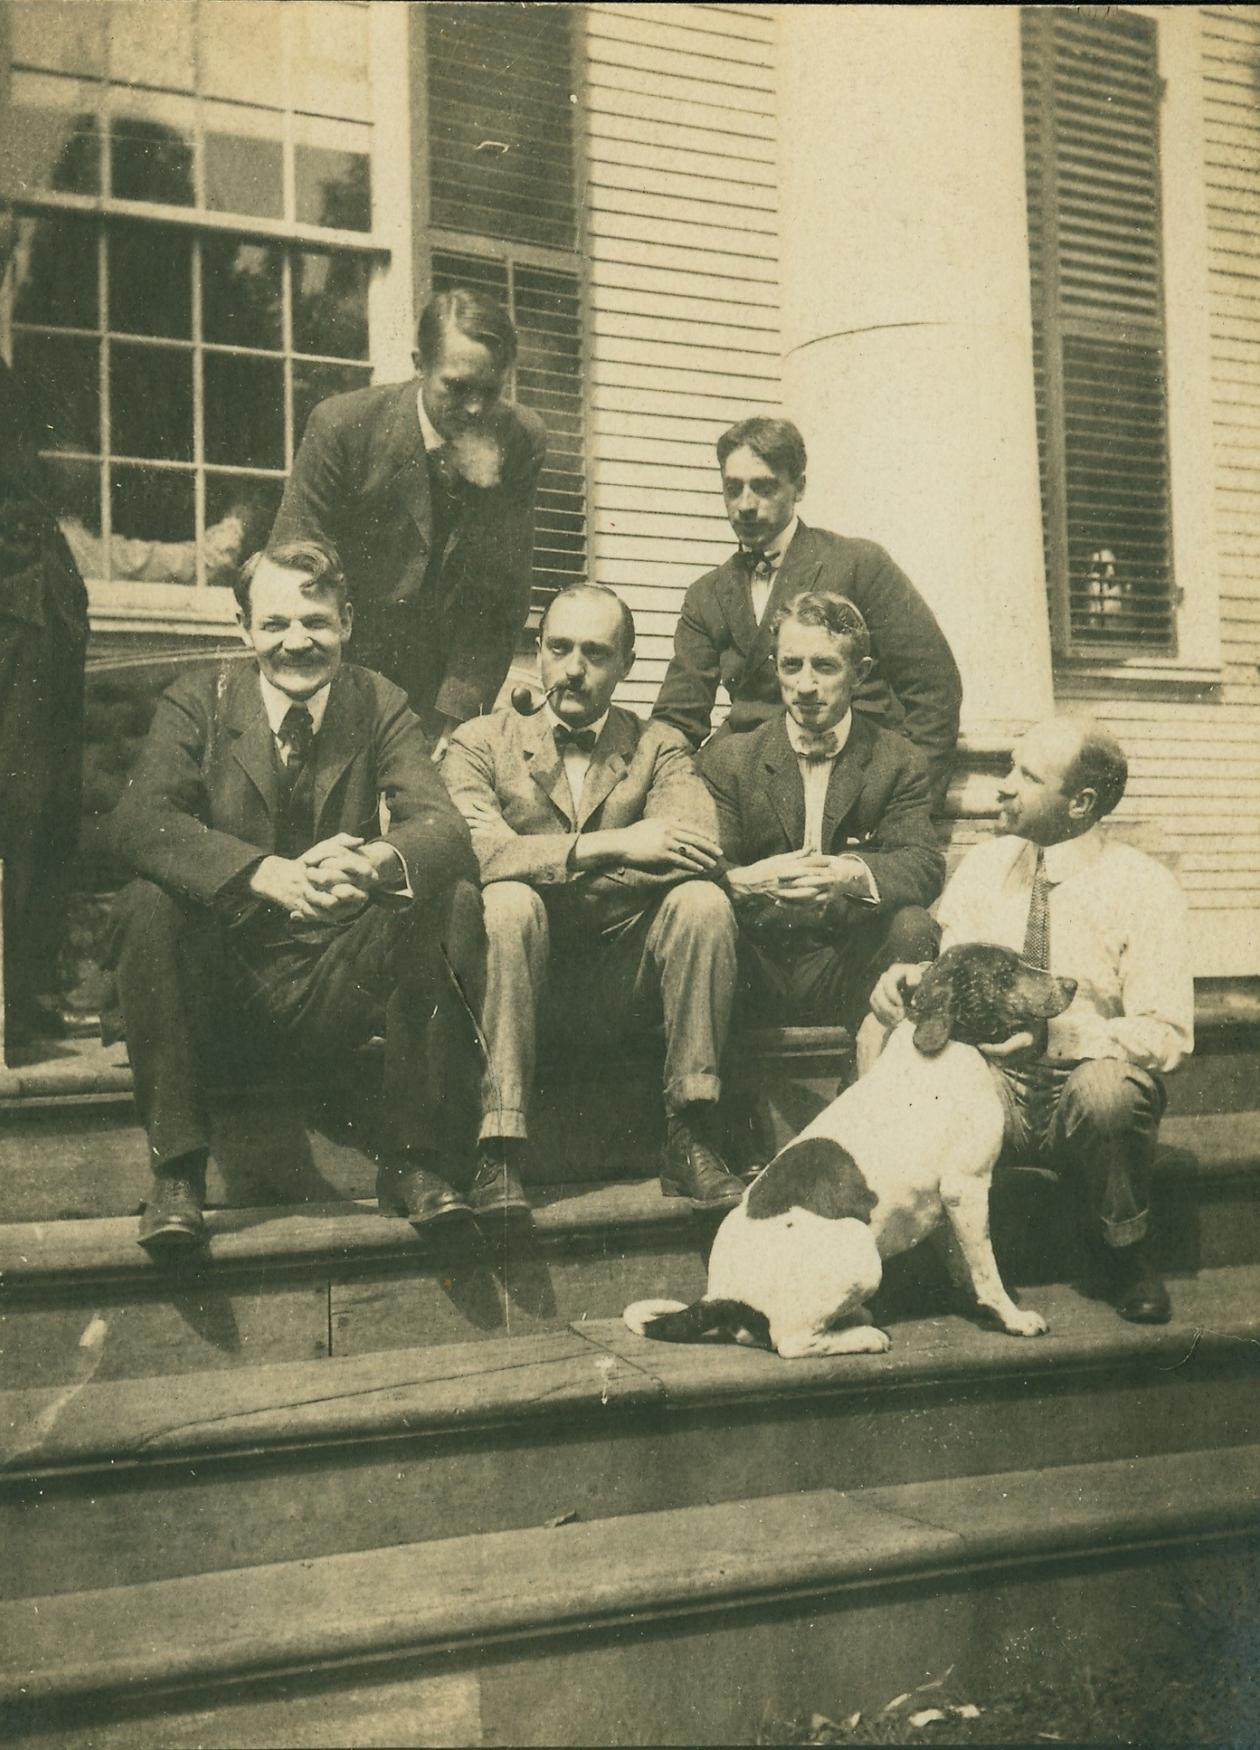 Old photo of six men and a dog sitting on steps